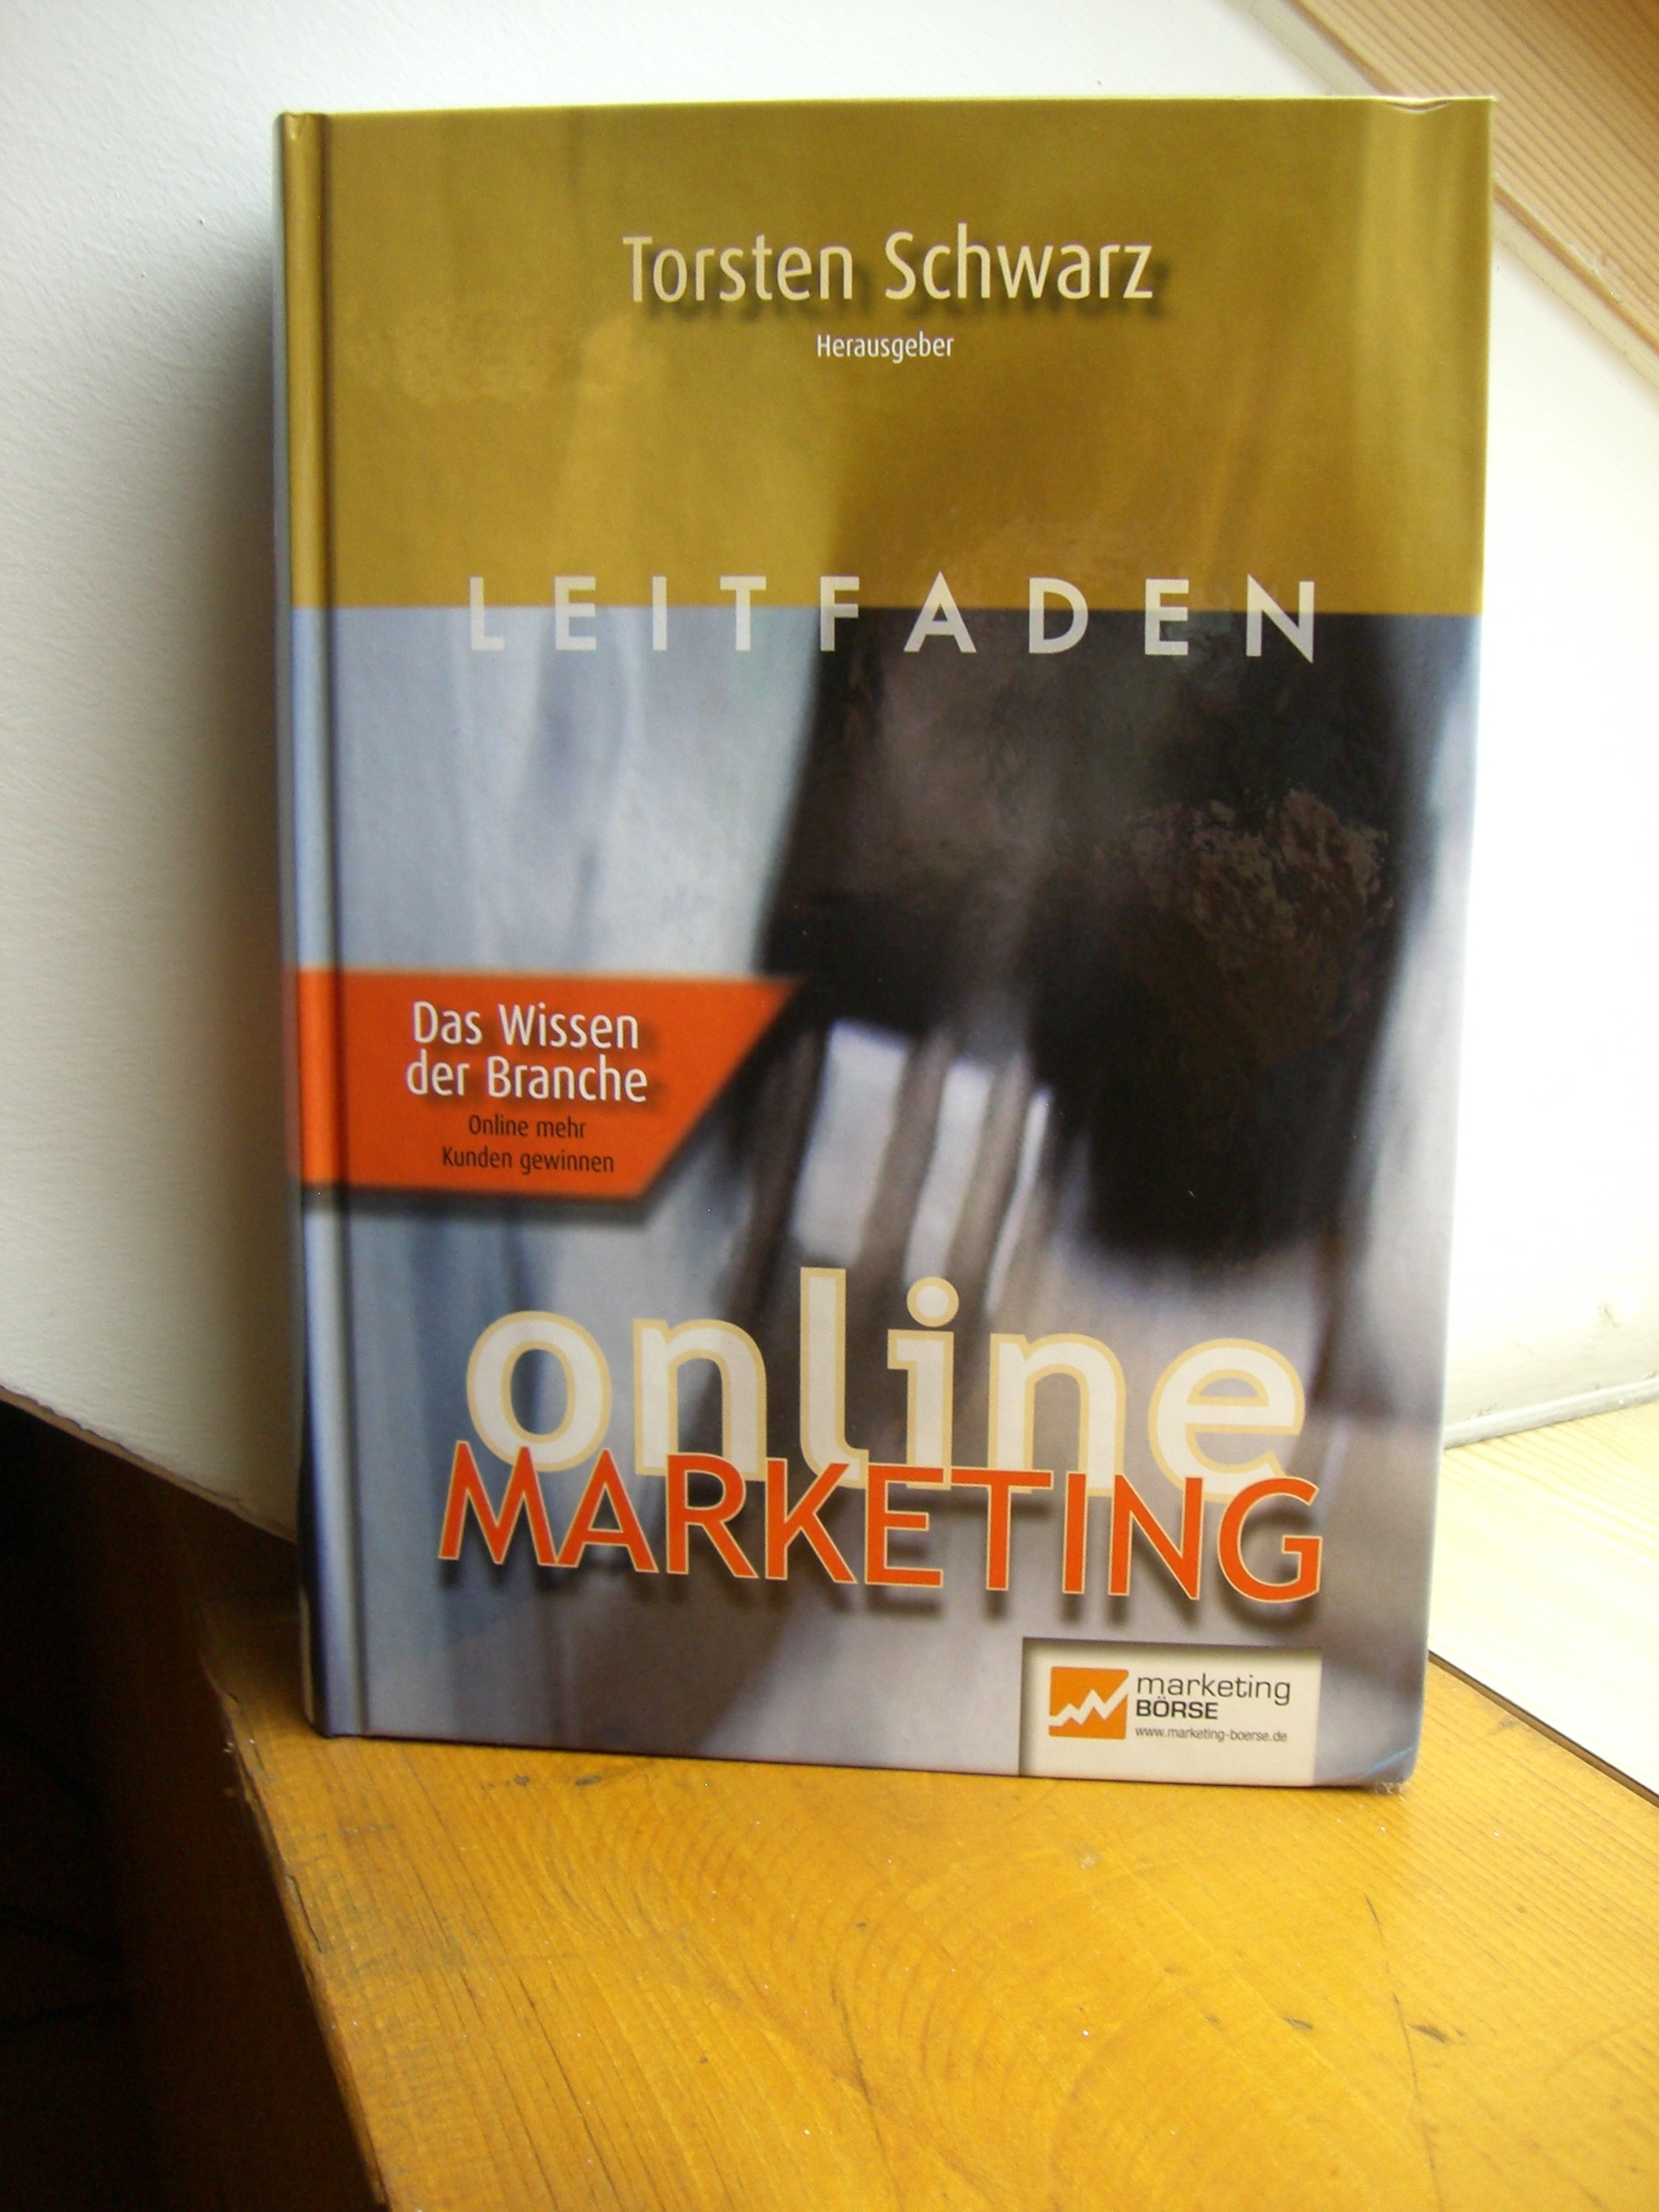 Online Marketing: Marit AG im Standardwerk der Branche